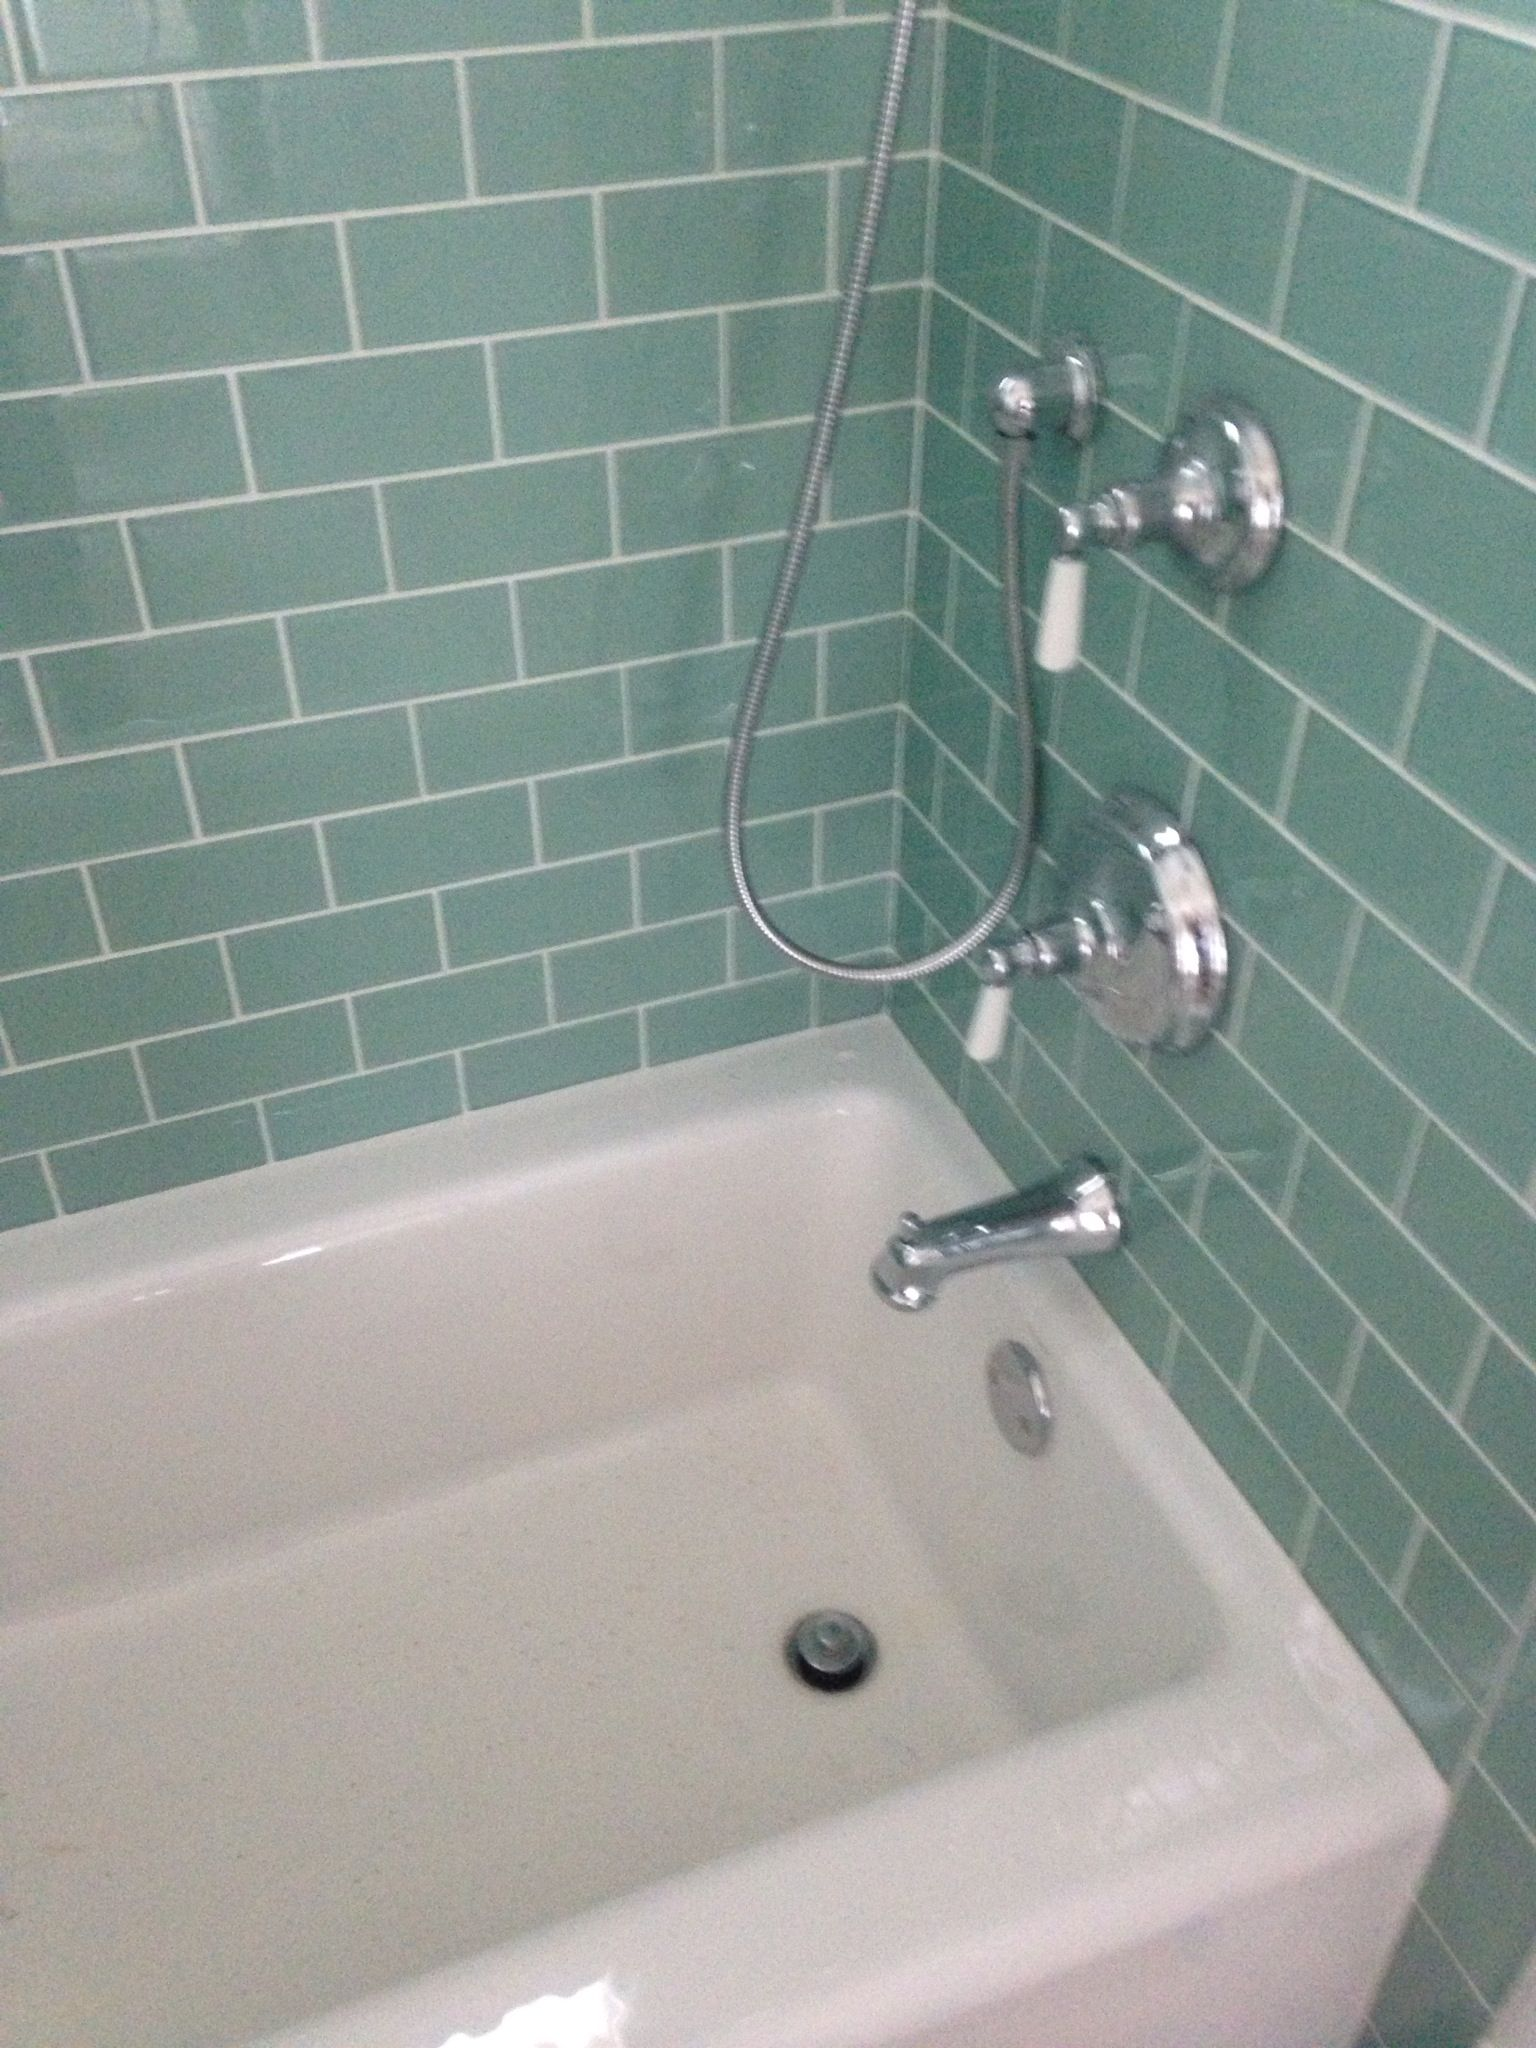 Timeless Bathroom Tile I Love The Teal Subway Tile James It Ll Look Good With Grey Walls Mold In Bathroom Bathroom Wall Tile Polished Bathroom